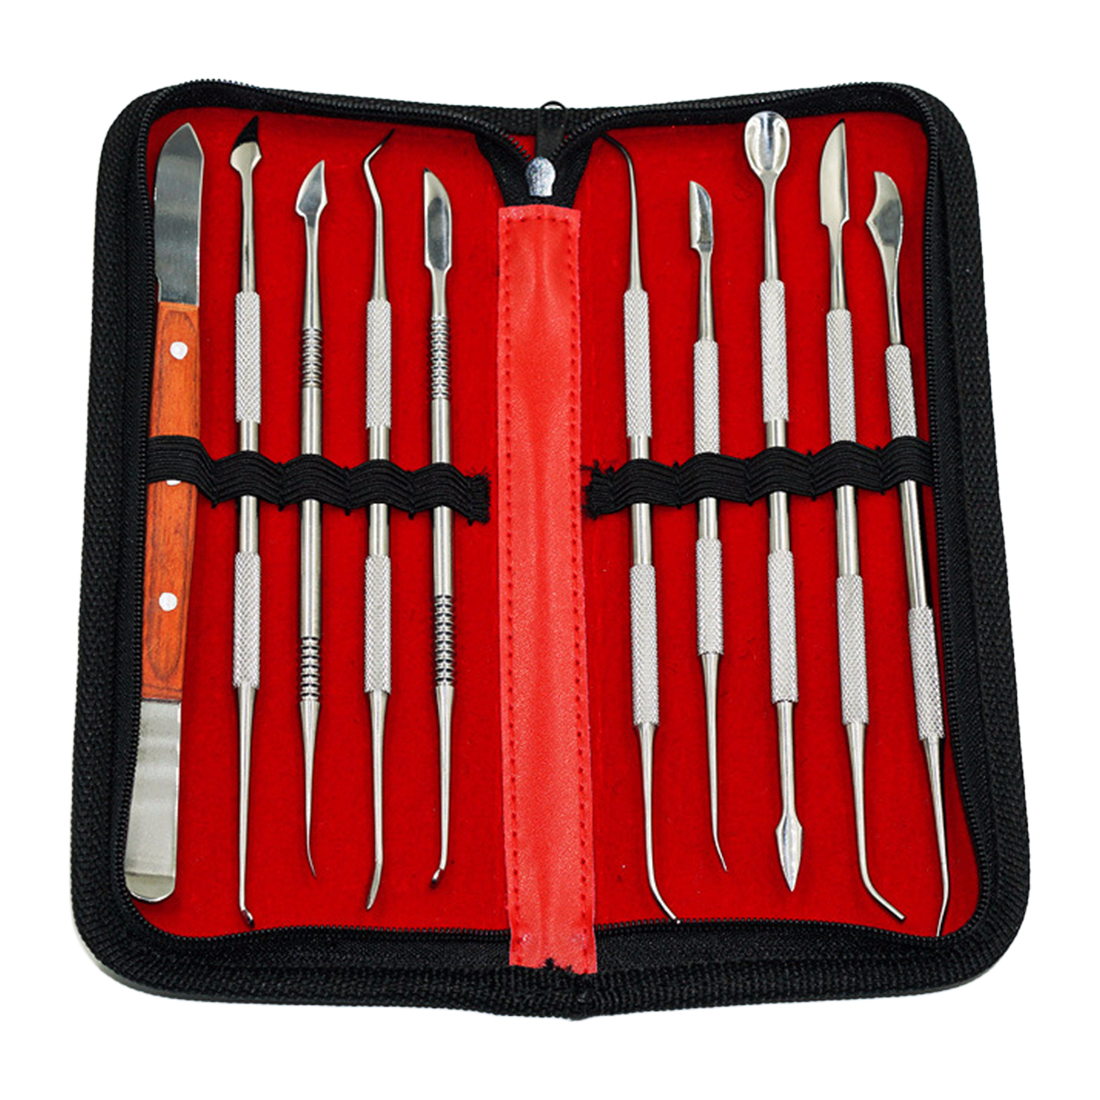 10Pcs Practical Stainless Steel Versatile Teeth Wax Carving Tool Set Dental Instrument Kit Dental Tool With PU Holder